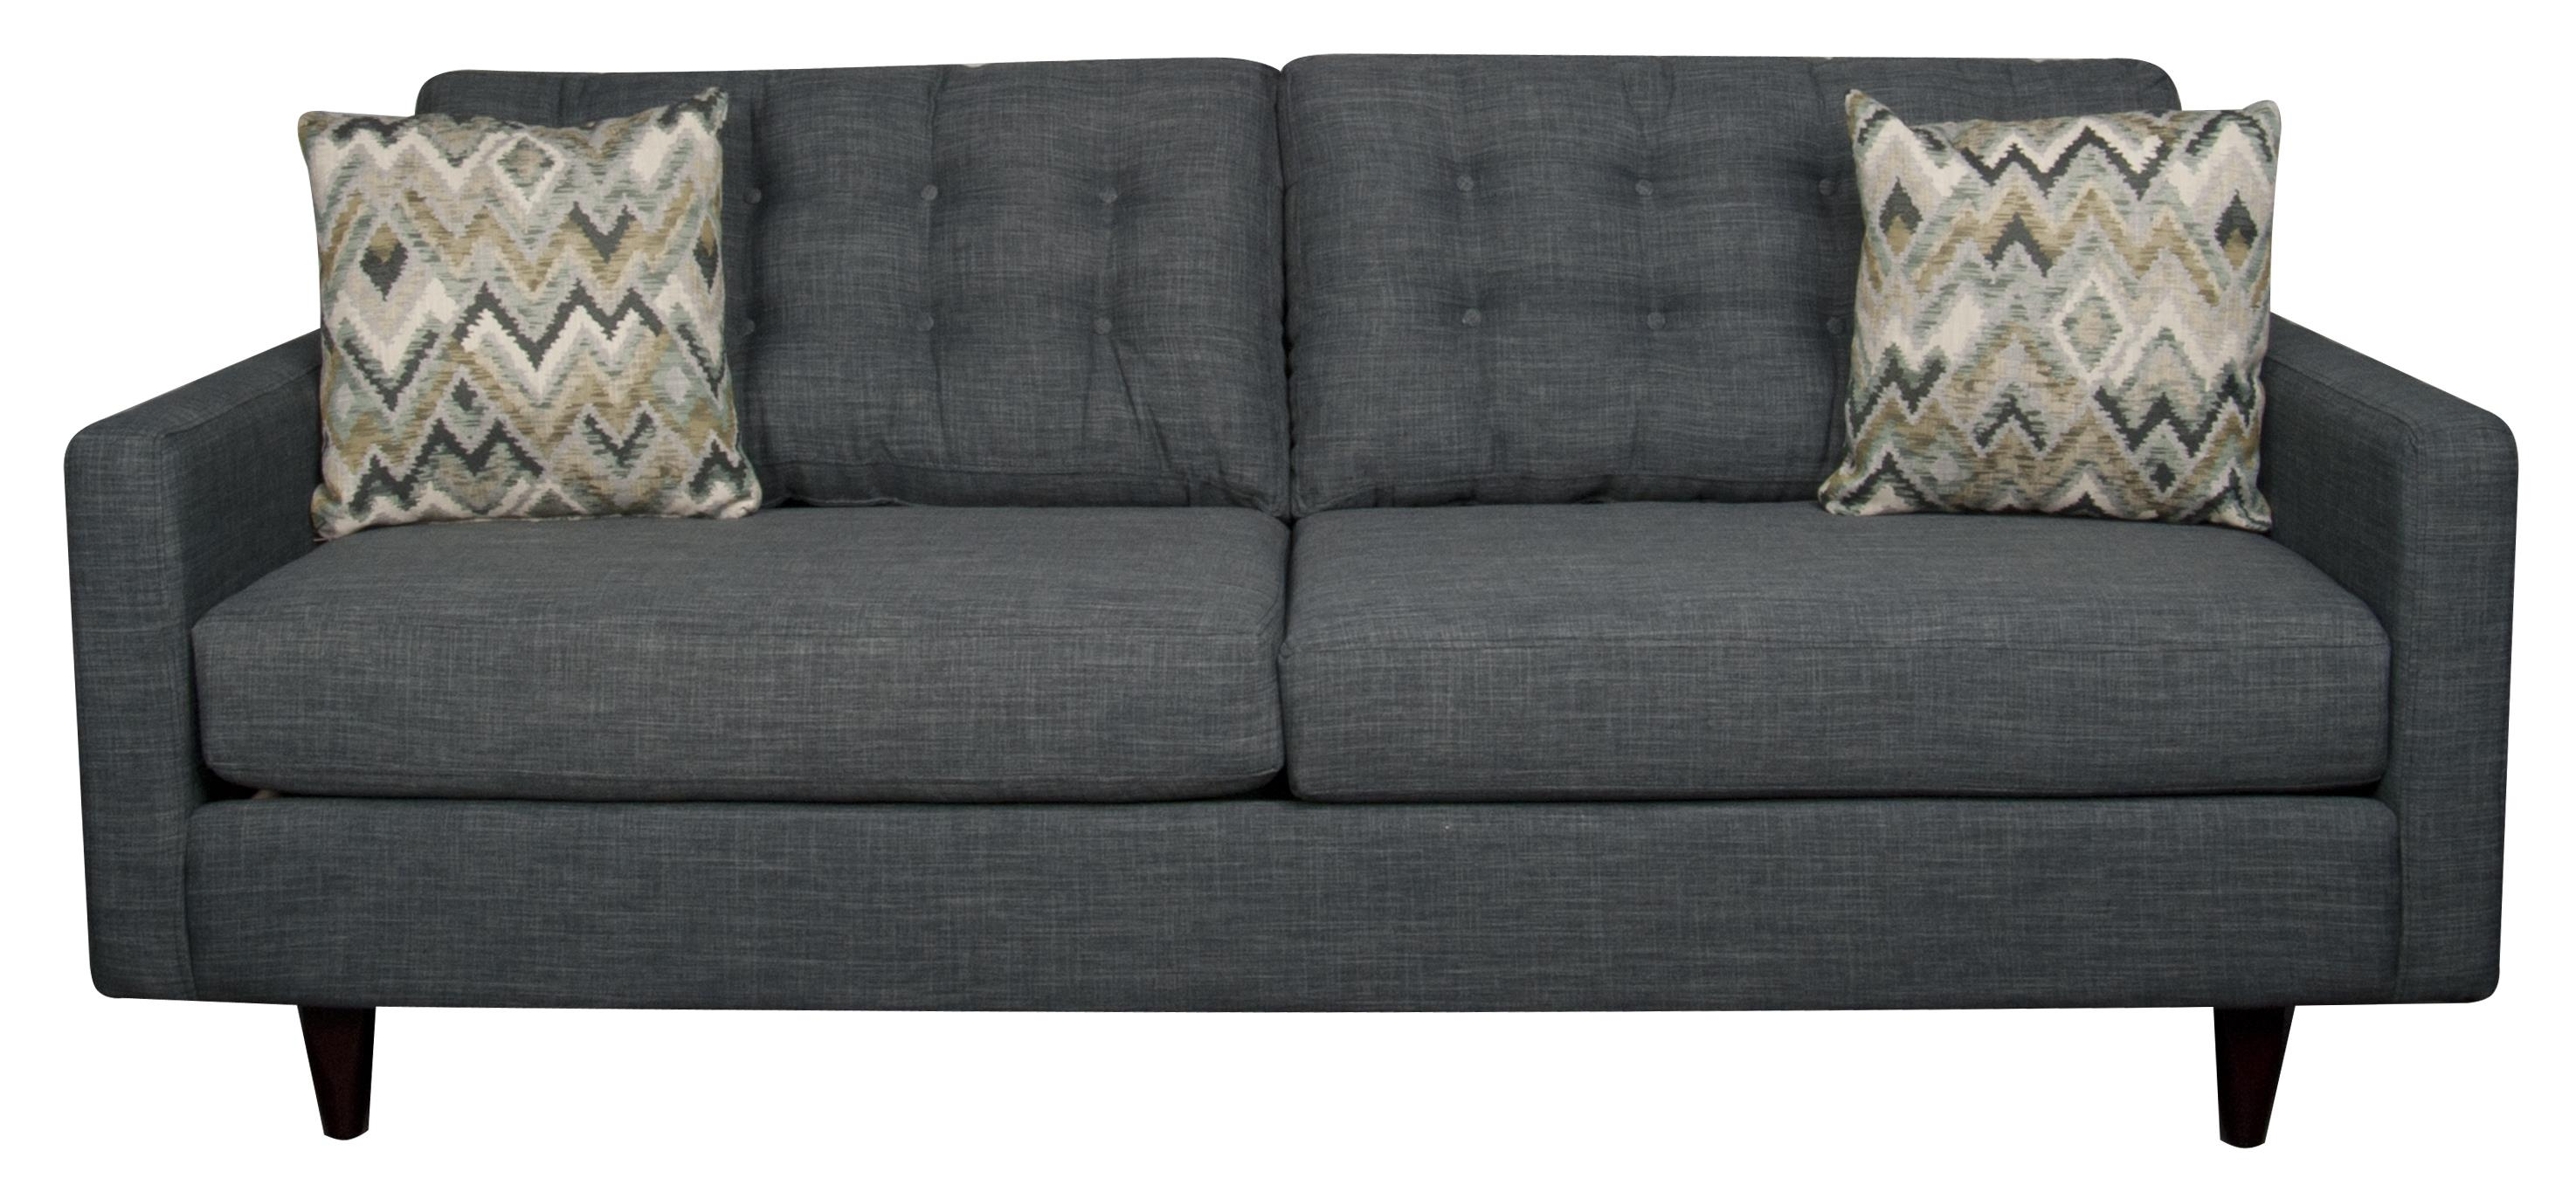 Elliston Place Skylar Skylar Sofa - Item Number: 680920903